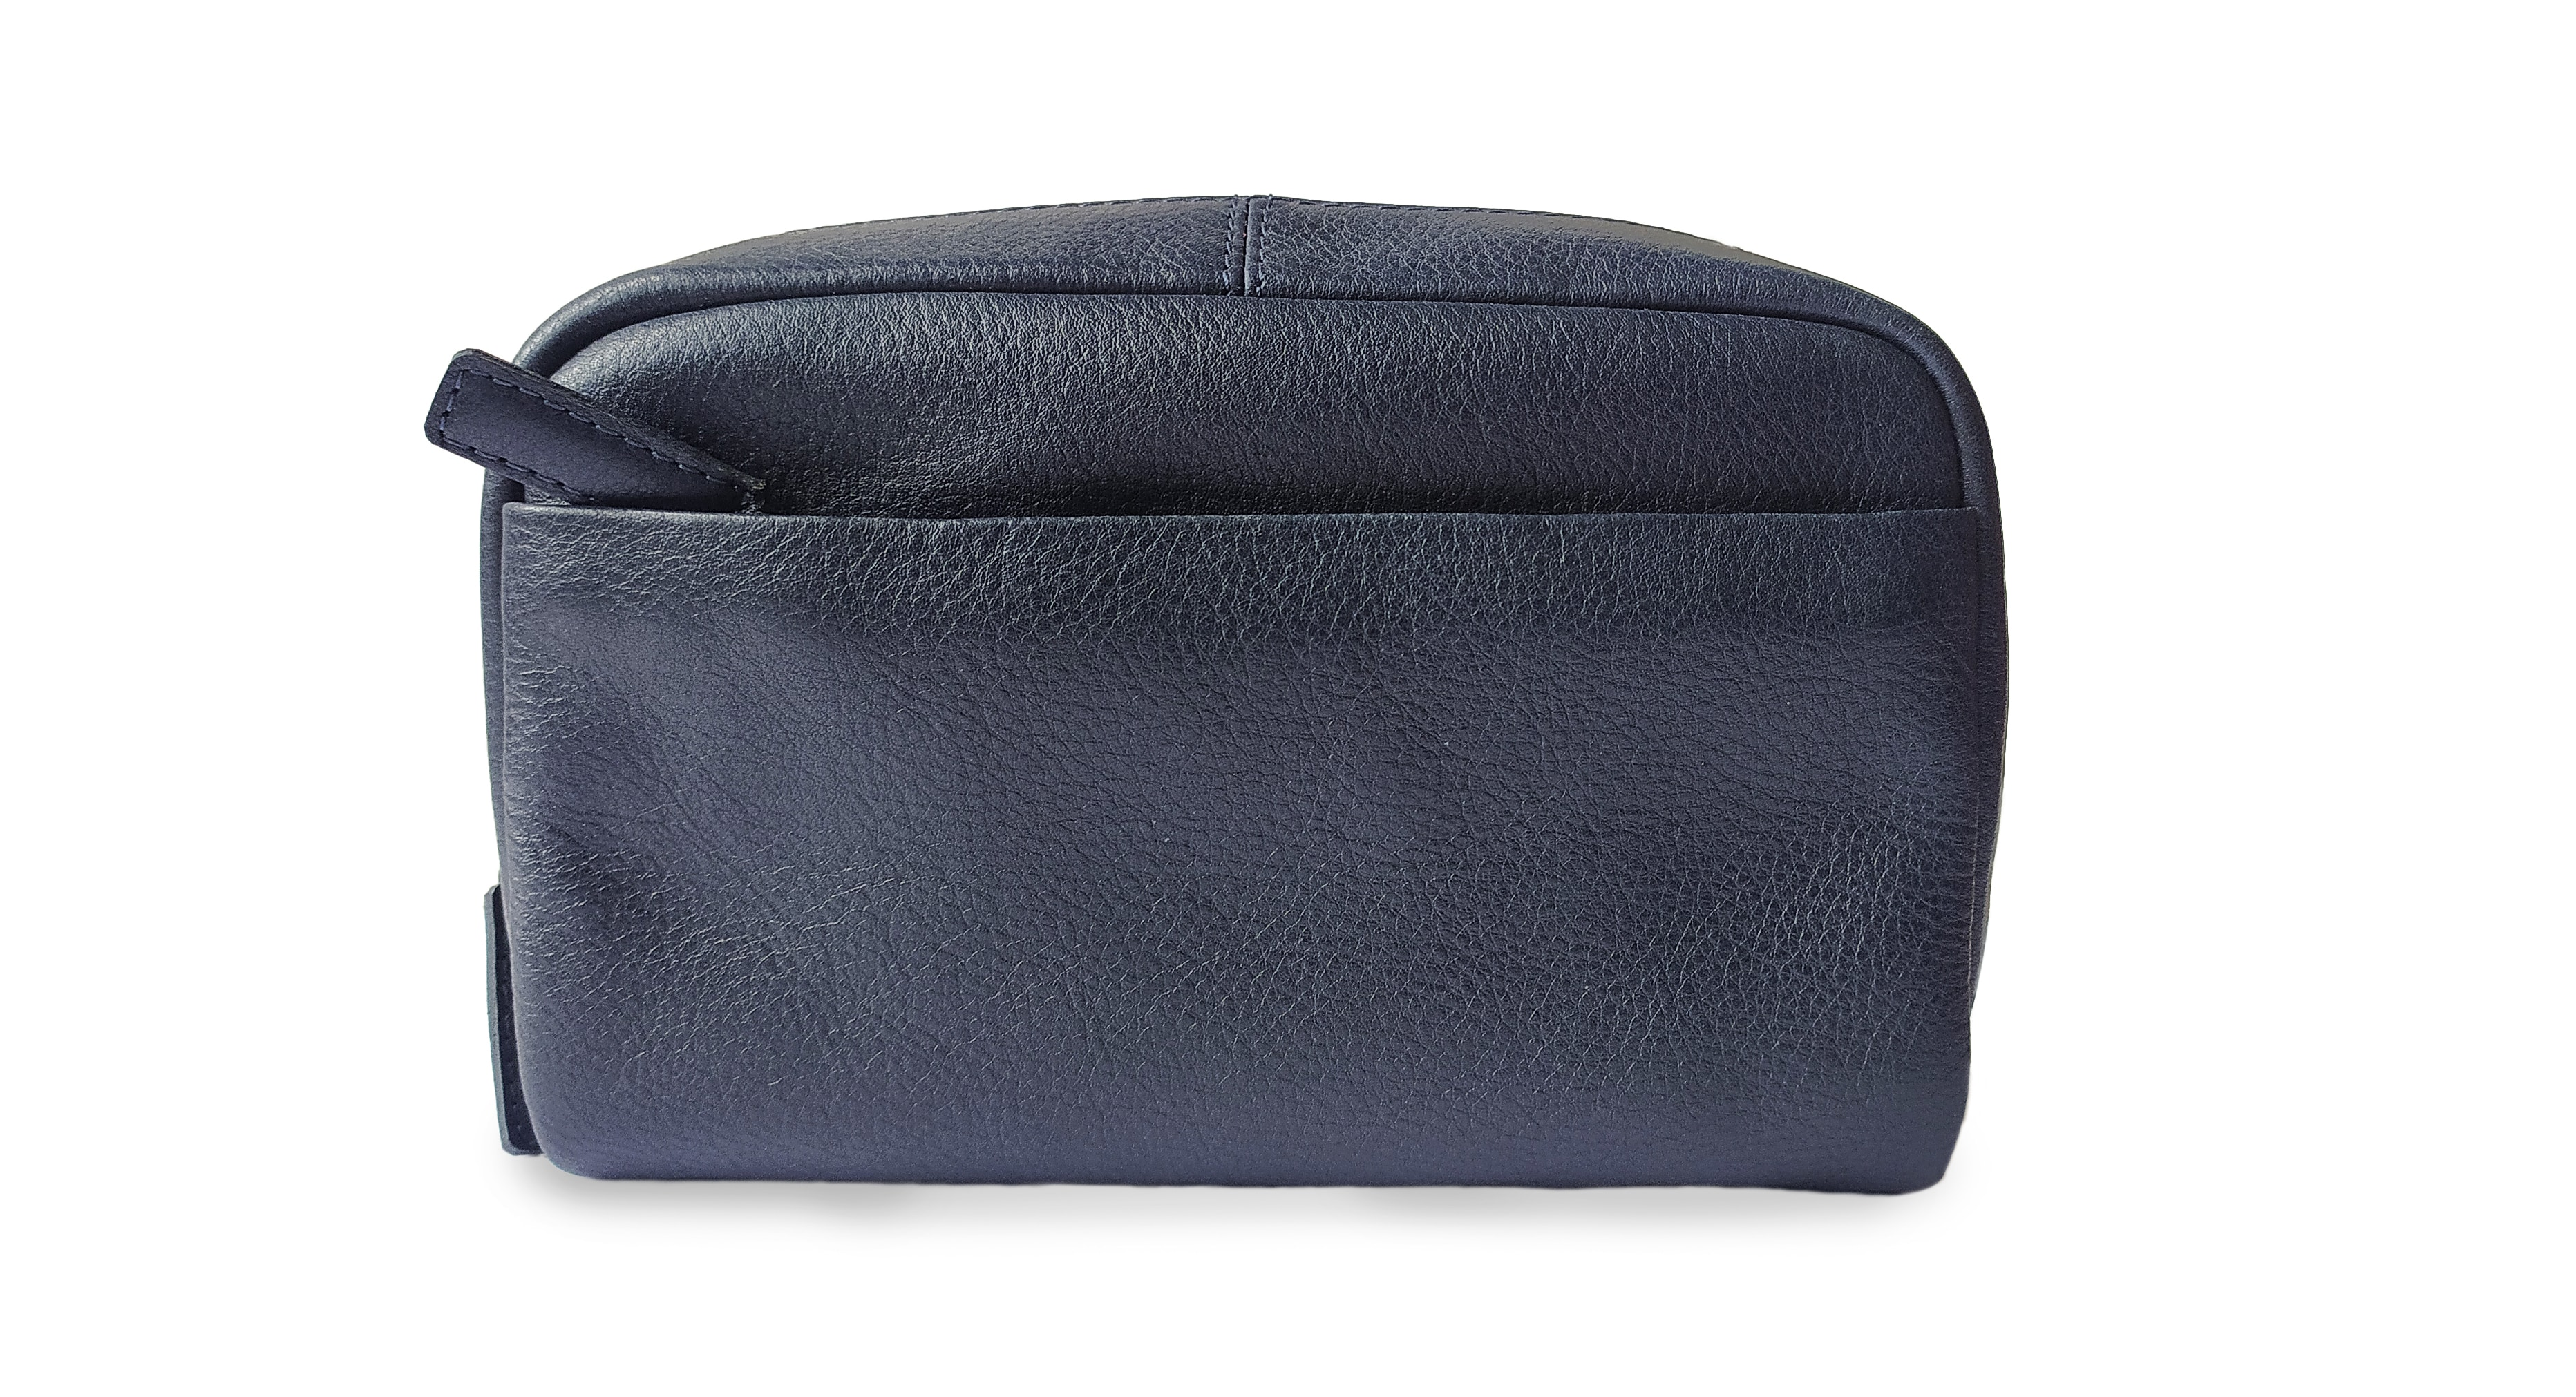 This zippered vanity case is both functional and practical and allows you to carry all your grooming essentials with you